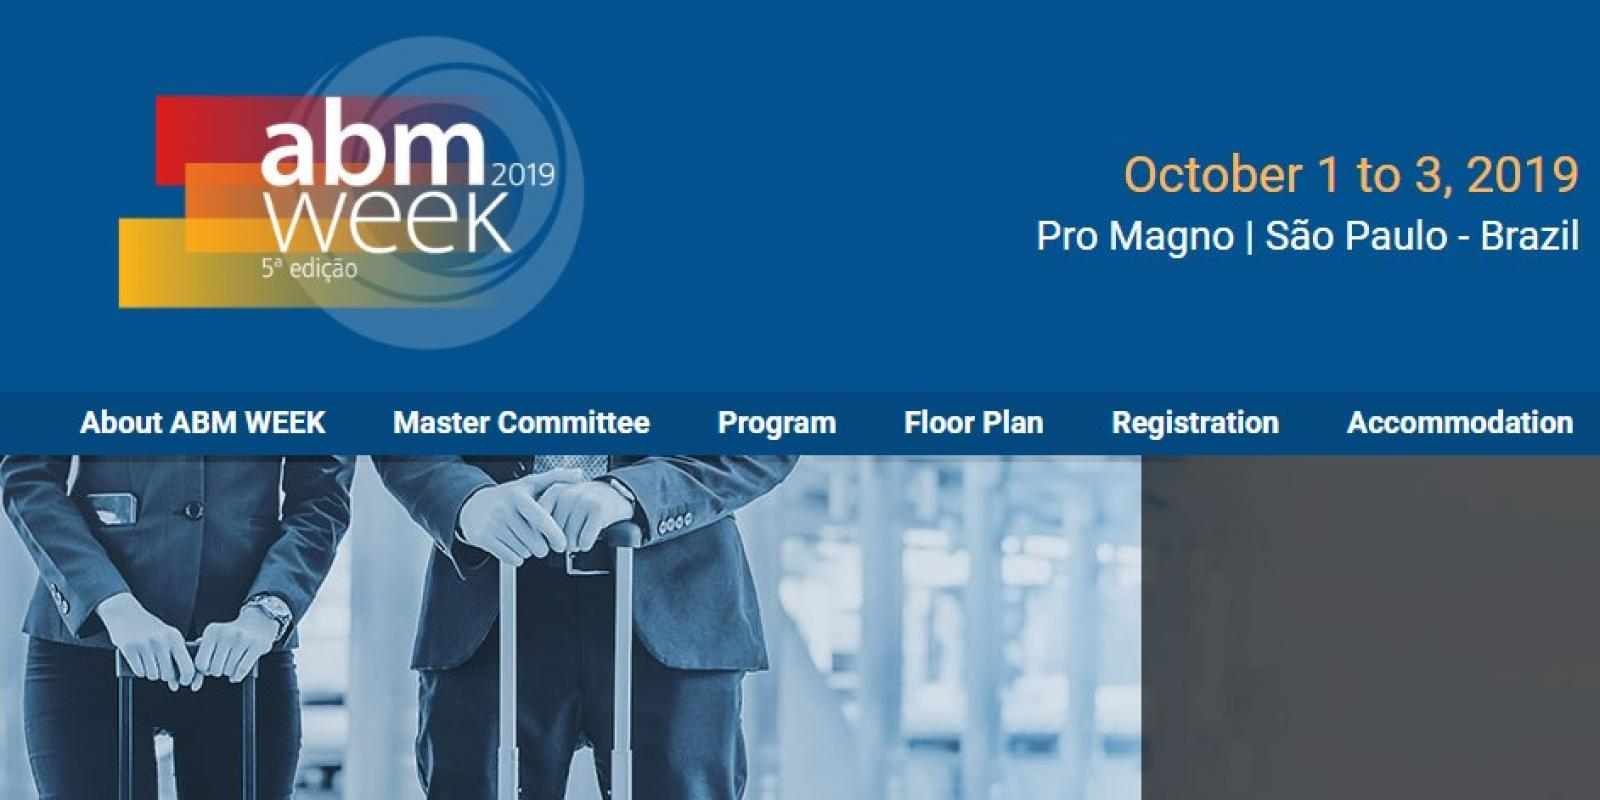 Calderys will be at ABM Week 2019 in Brazil